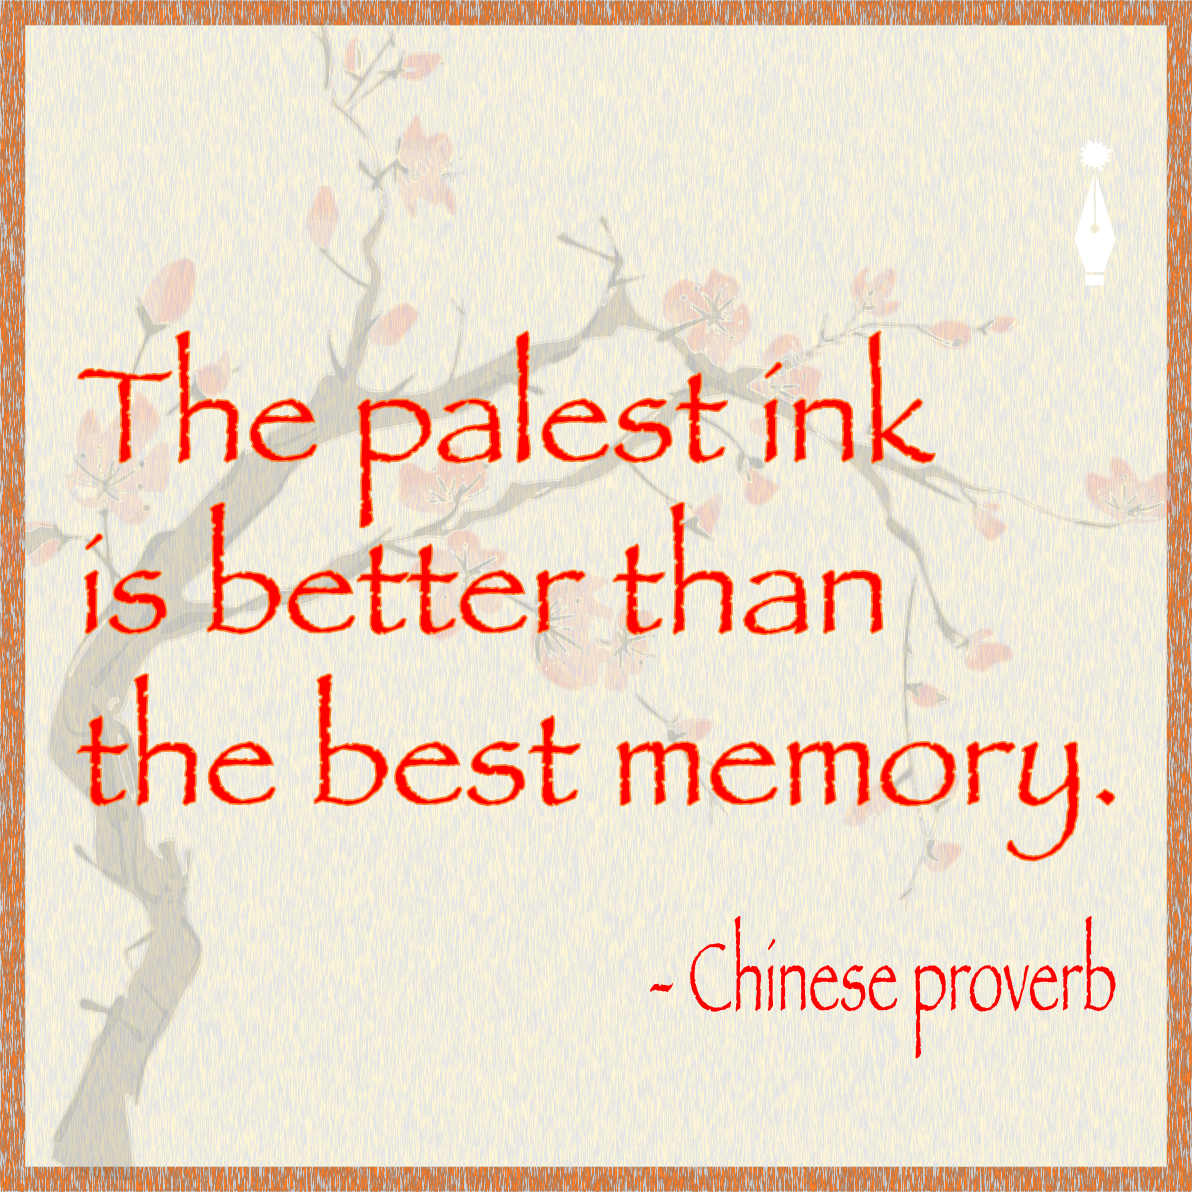 The palest ink is better than the best memory